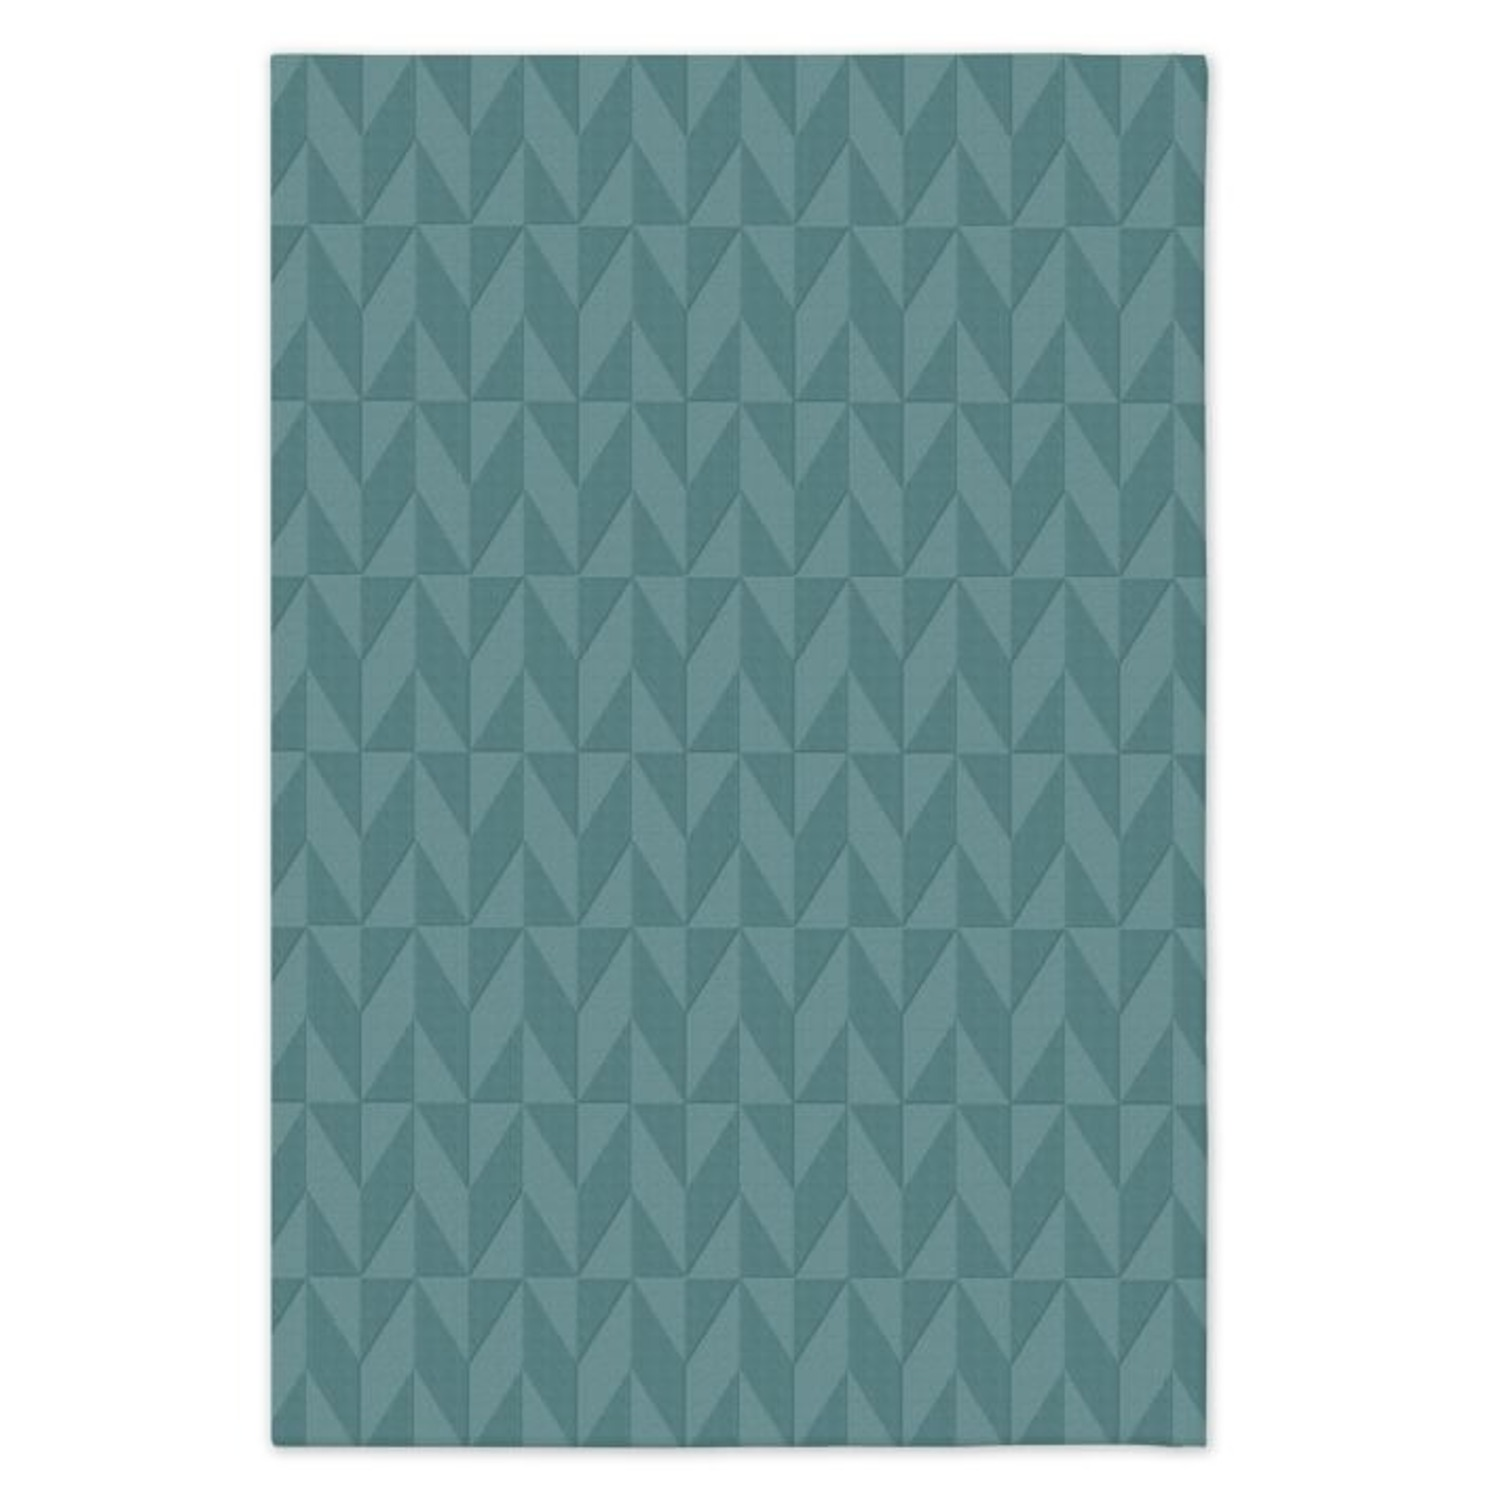 West Elm SPO Andes Rug, True Blue - image-2